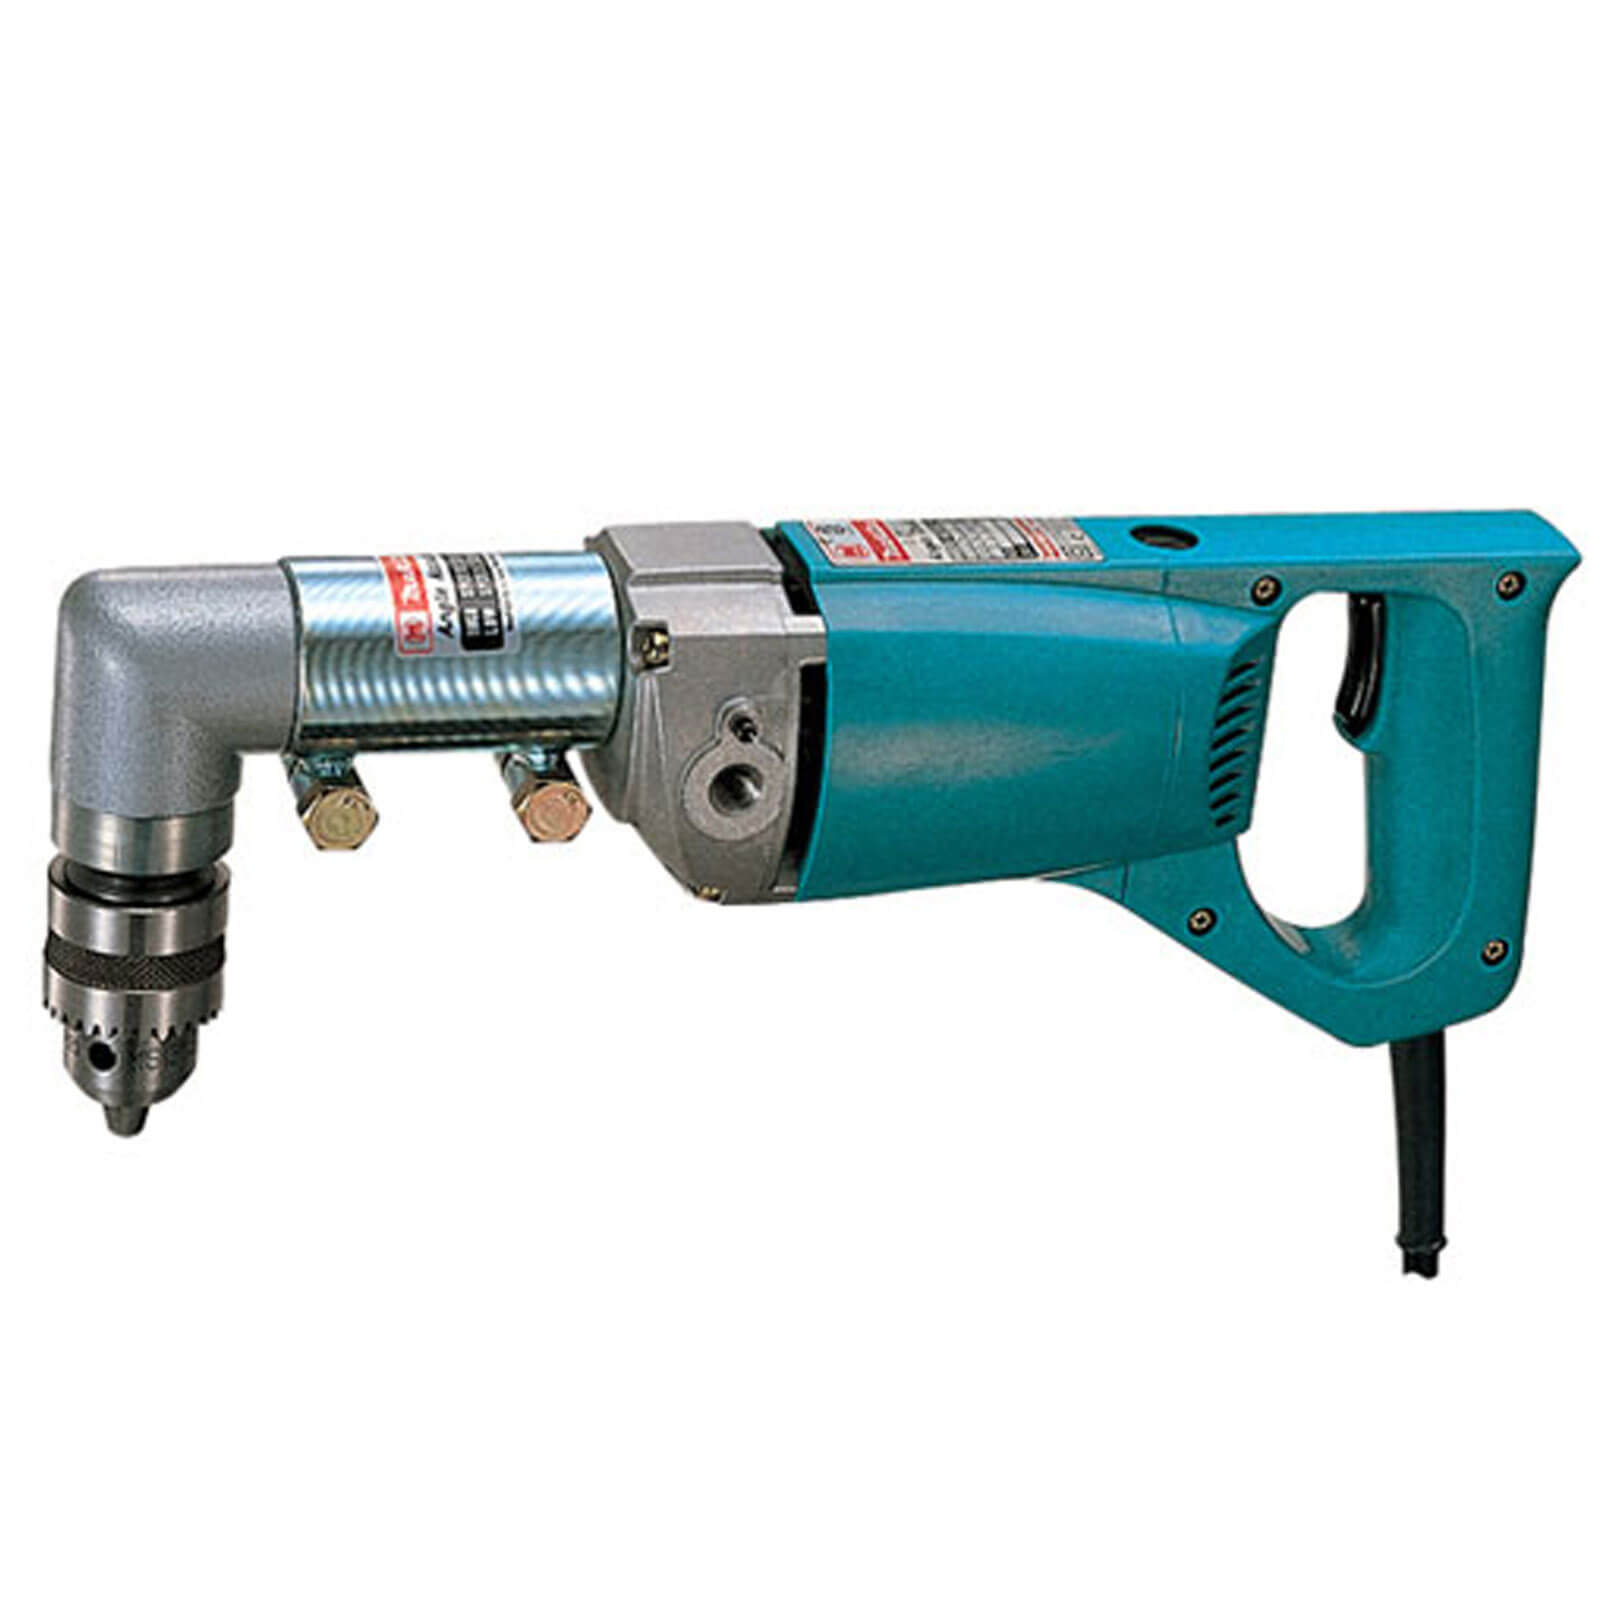 Makita 6300LR Rotary Right Angle Drill 240v